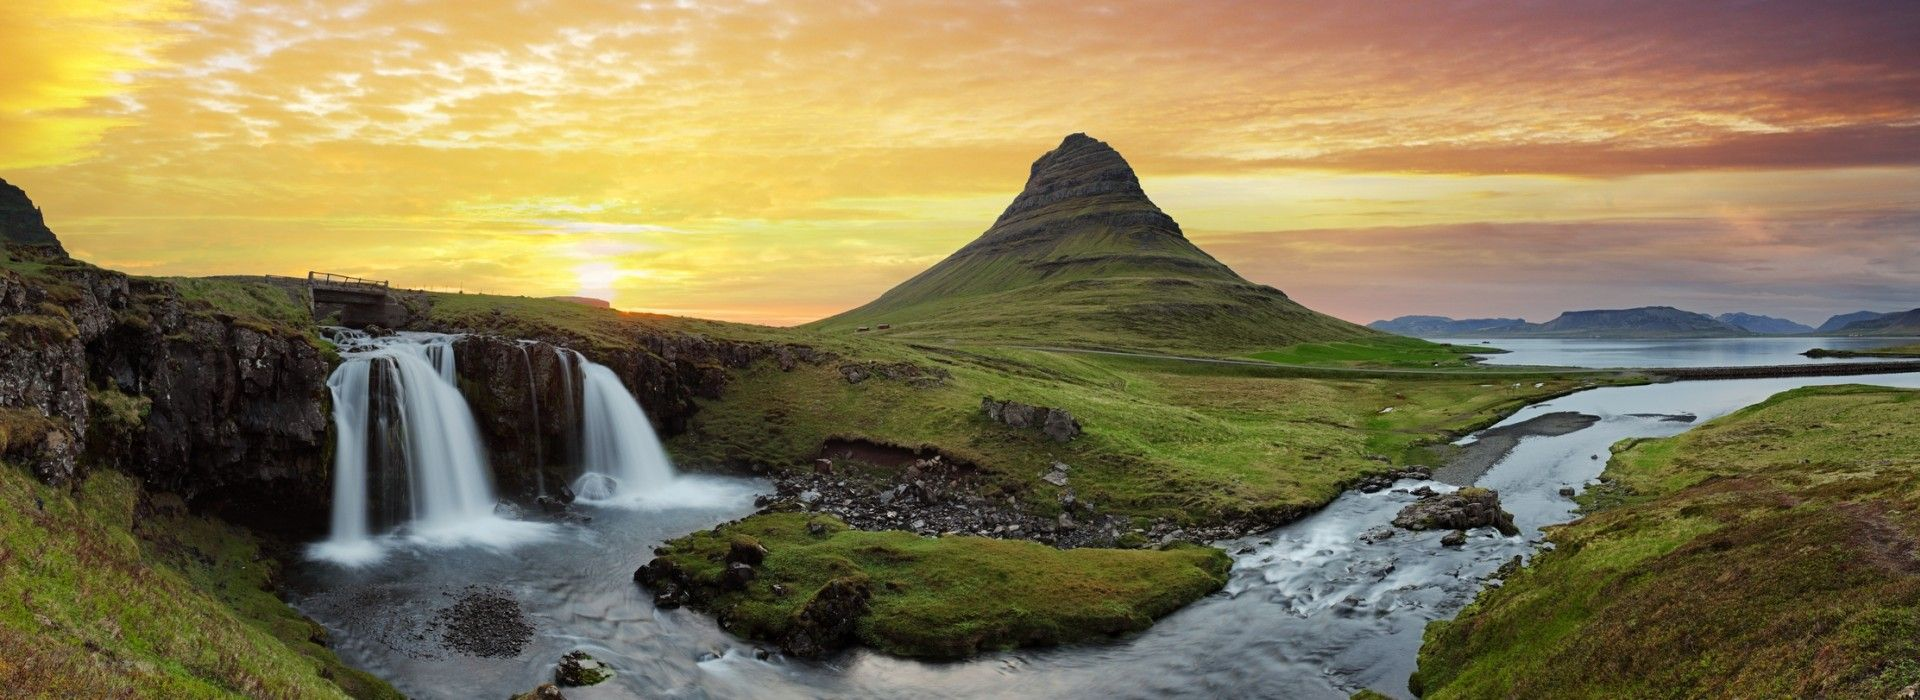 Hot springs Tours in Iceland